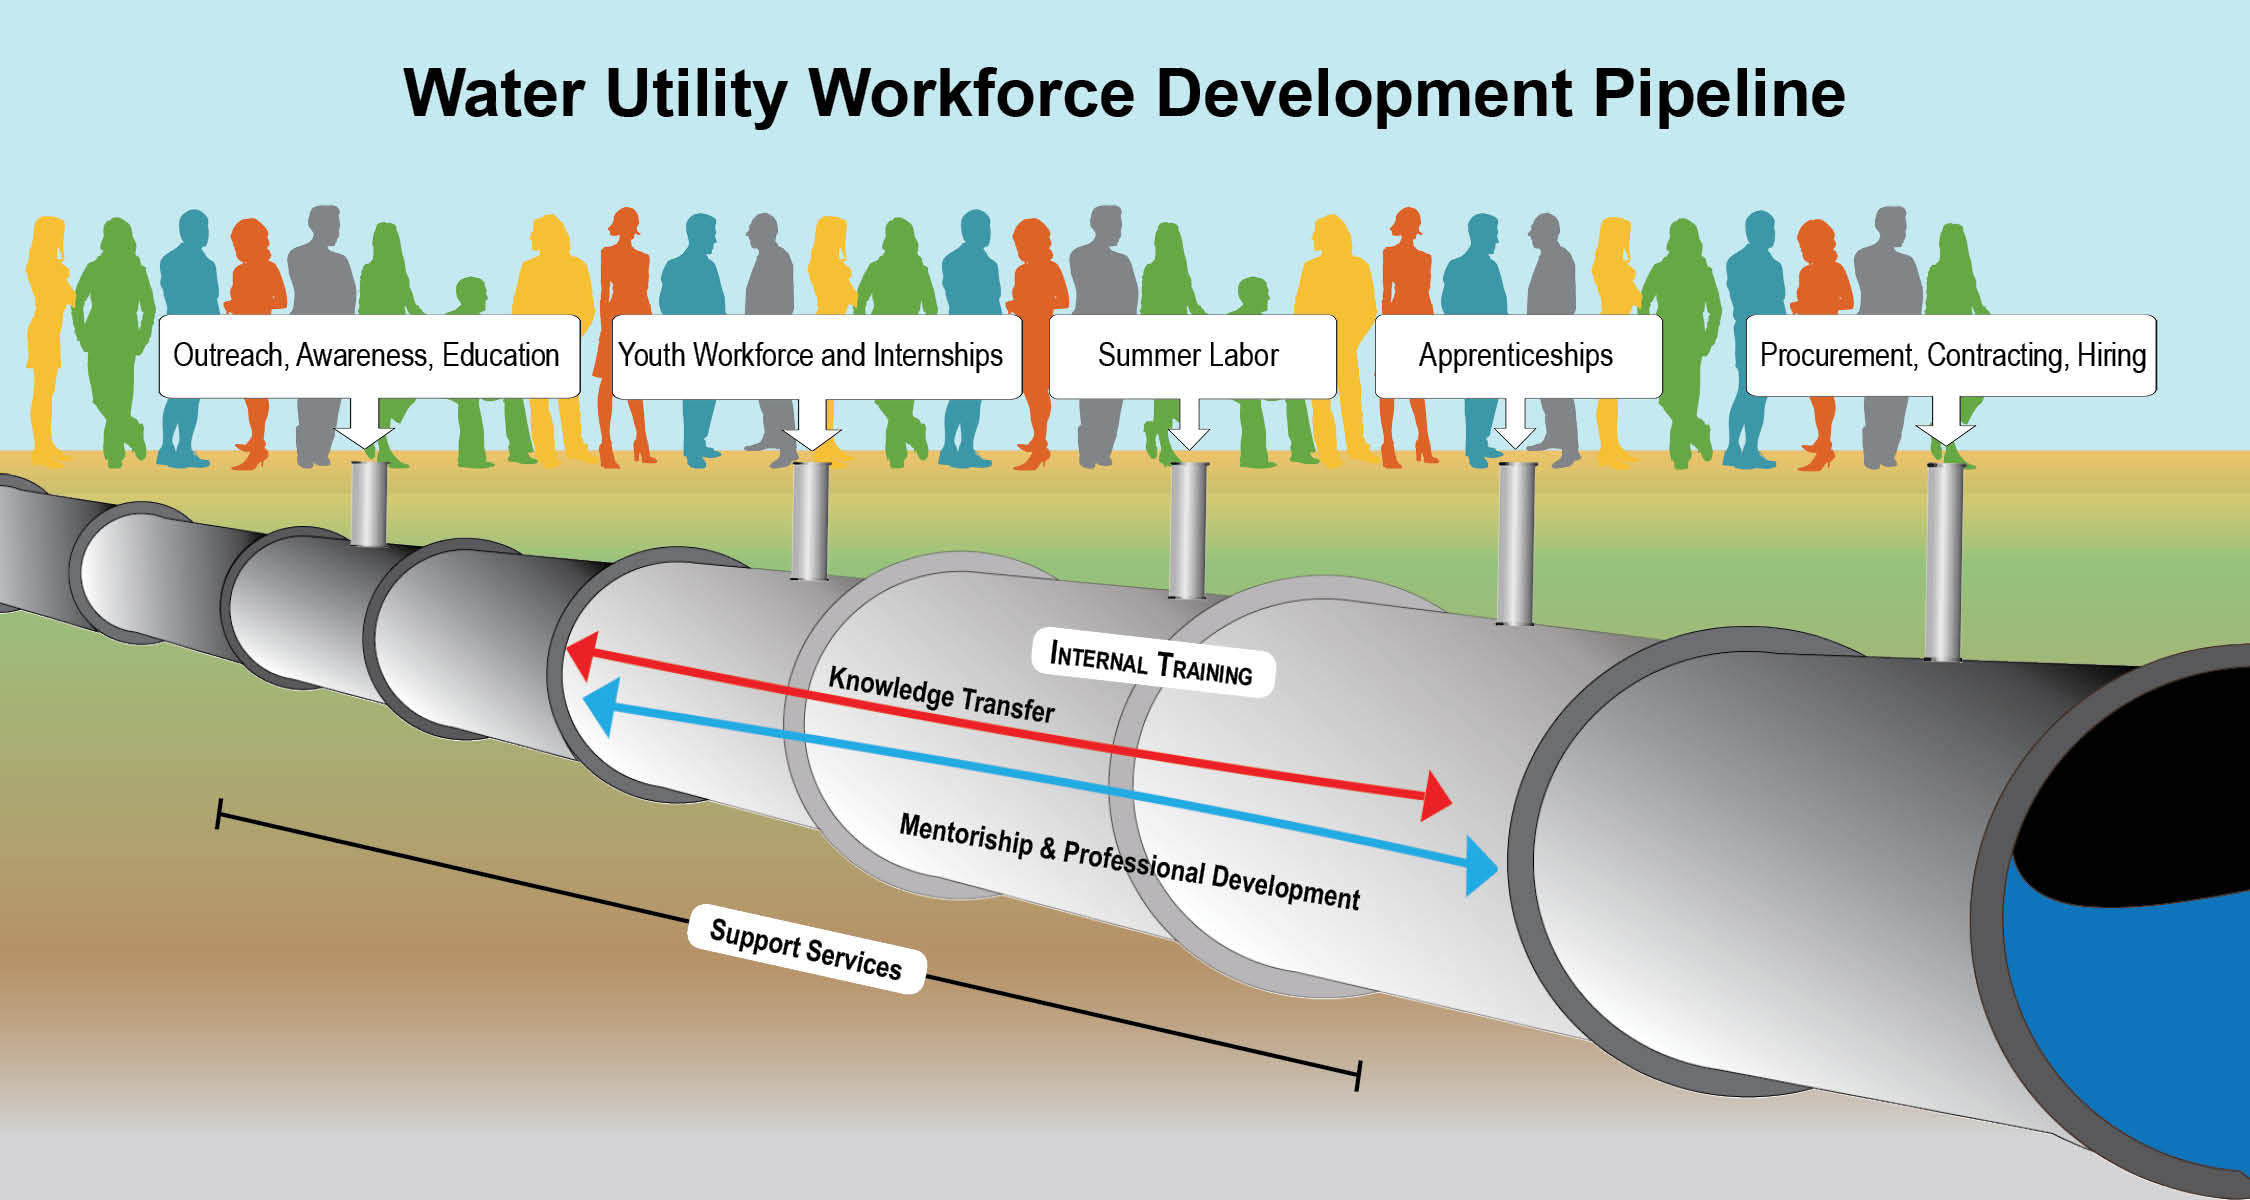 water utility workforce development pipeline graphic